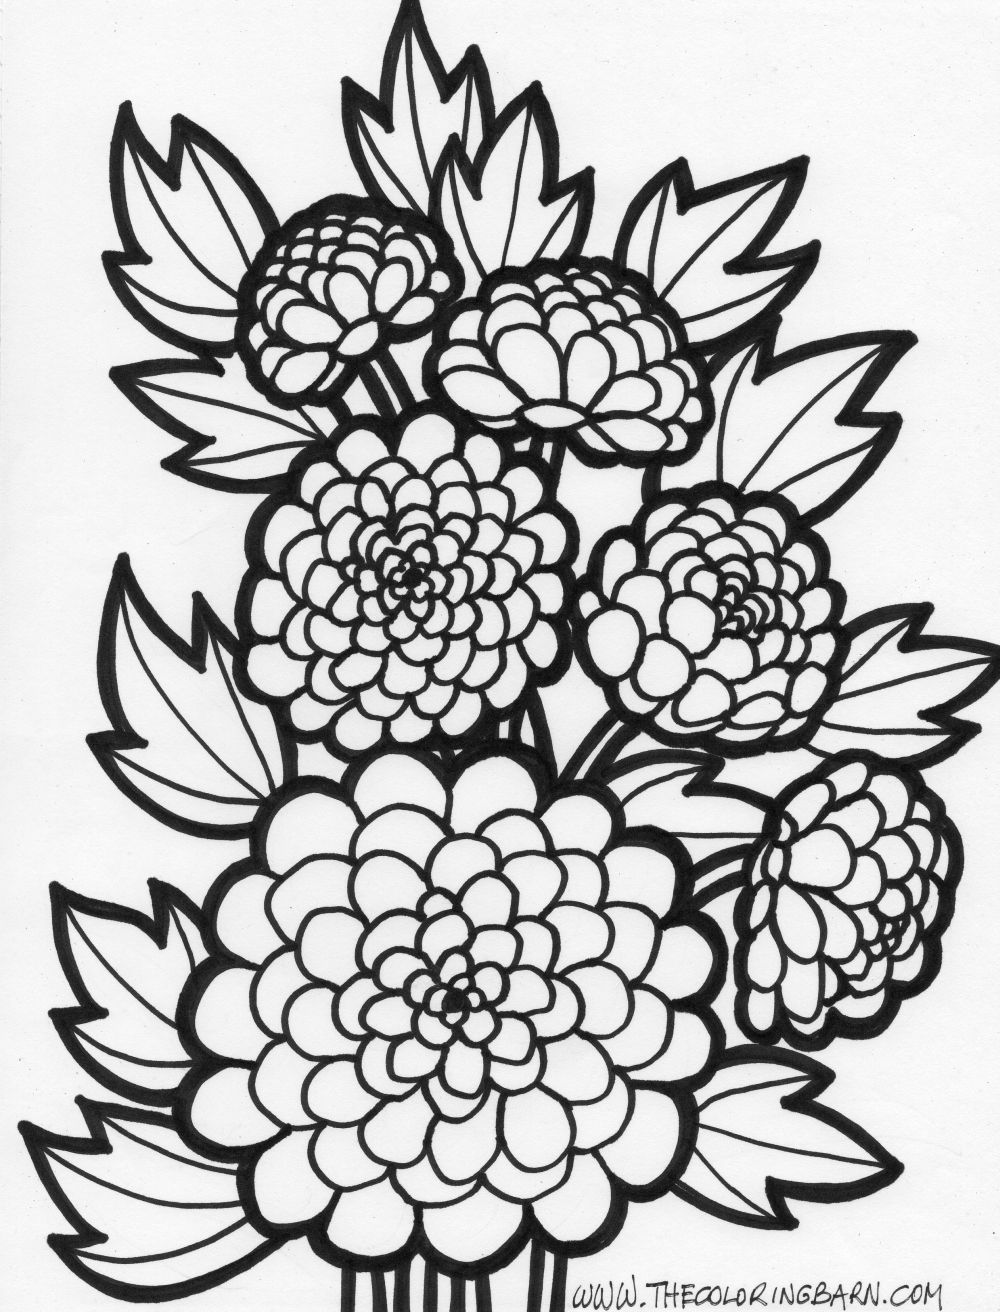 Colouring in sheets of flowers - Floral Coloring Pages To Download And Print For Free